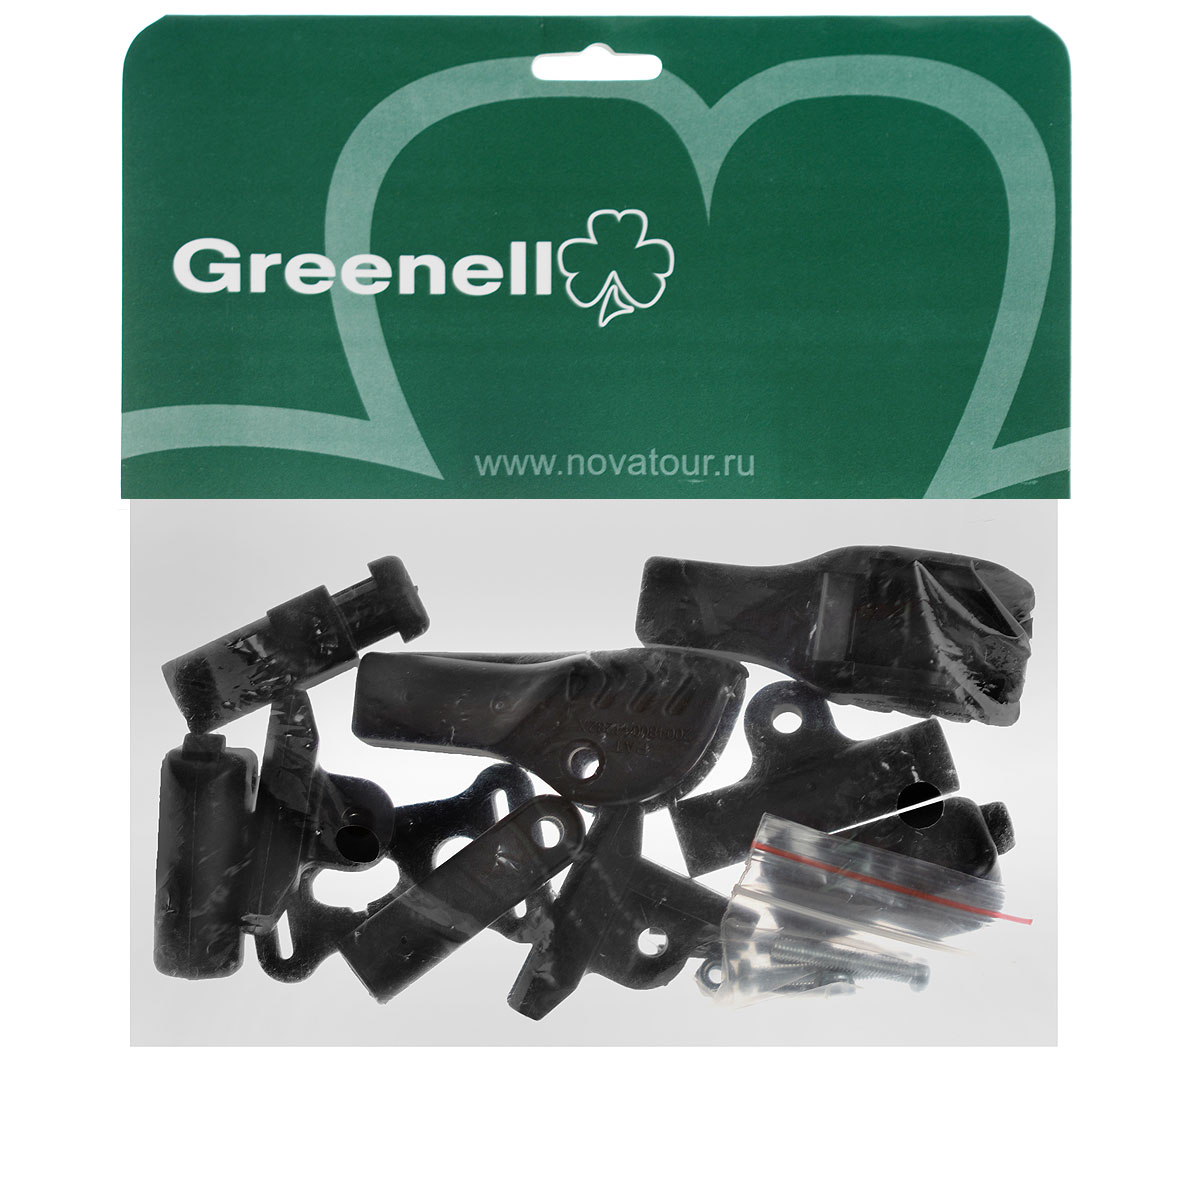 Ремкомплект Greenell №1, для палаток: Aughris 2, Castlerea 4, Clare 3, Dingle 3, Dingle light 3, Howth 4, Larne 2, Private, Tralee 2, Tralee 3 детская обувь для дома other s80 2015 1 2 3 4